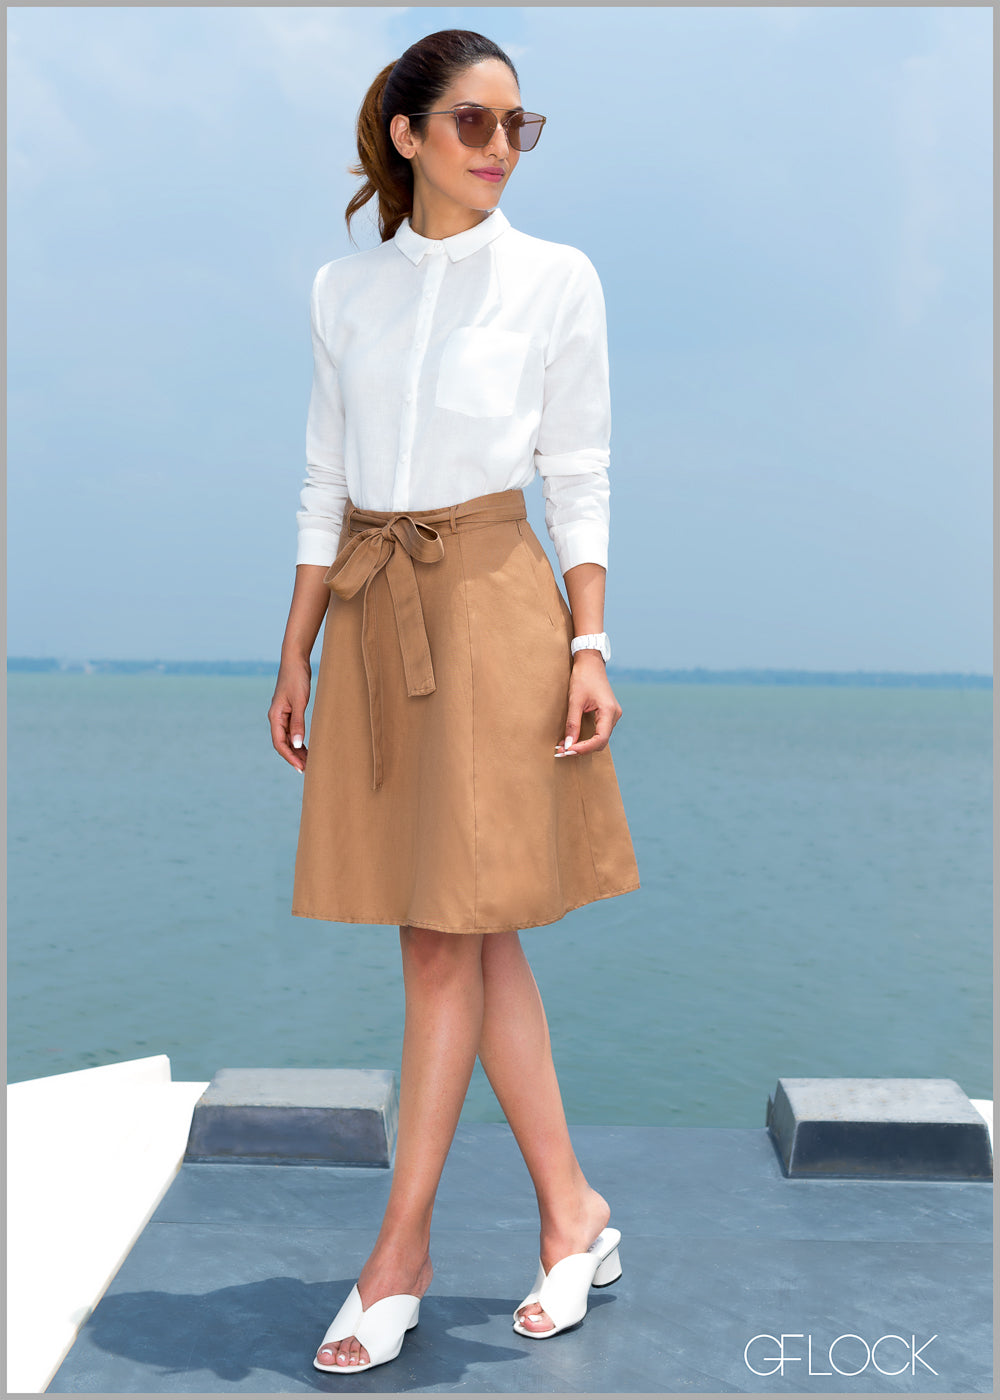 Linen Detailed Waist Band Skirt - GFLOCK.LK